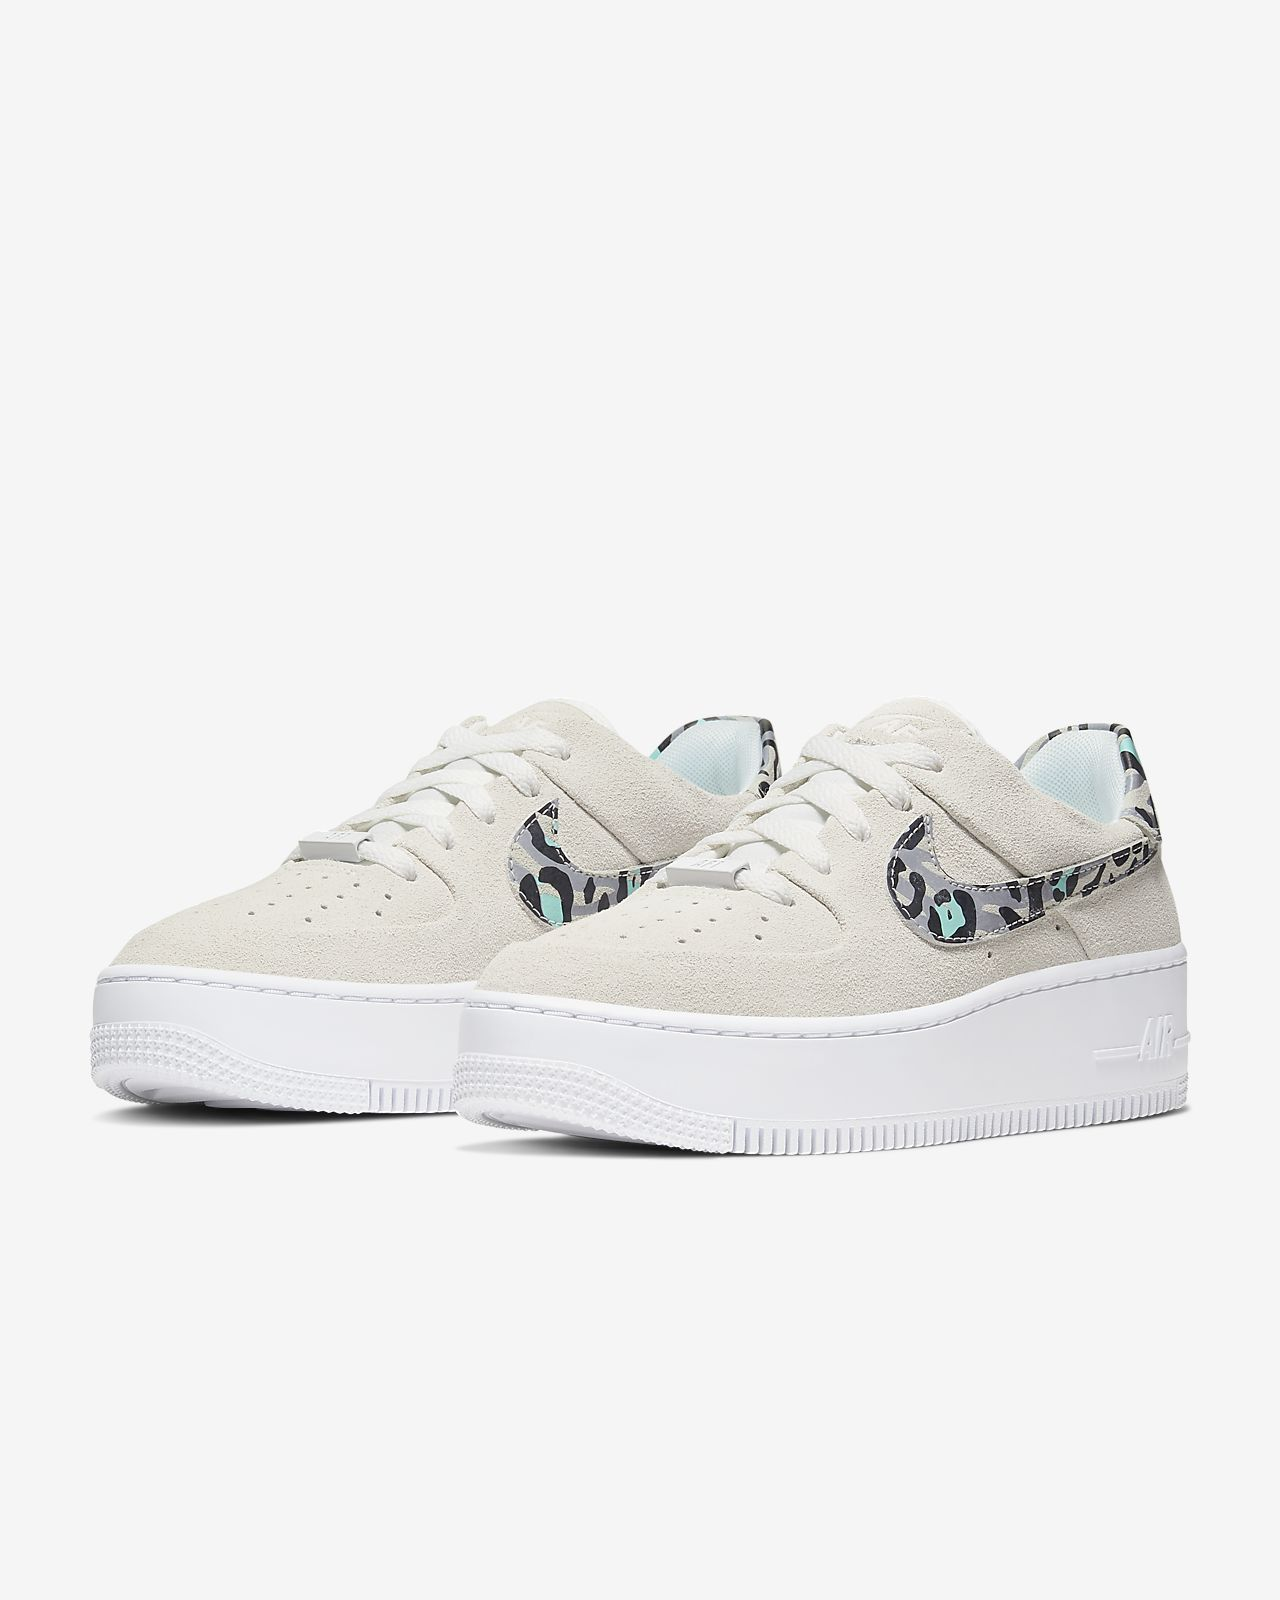 Nike Air Force 1 Sage Low Women's Animal Print Shoe